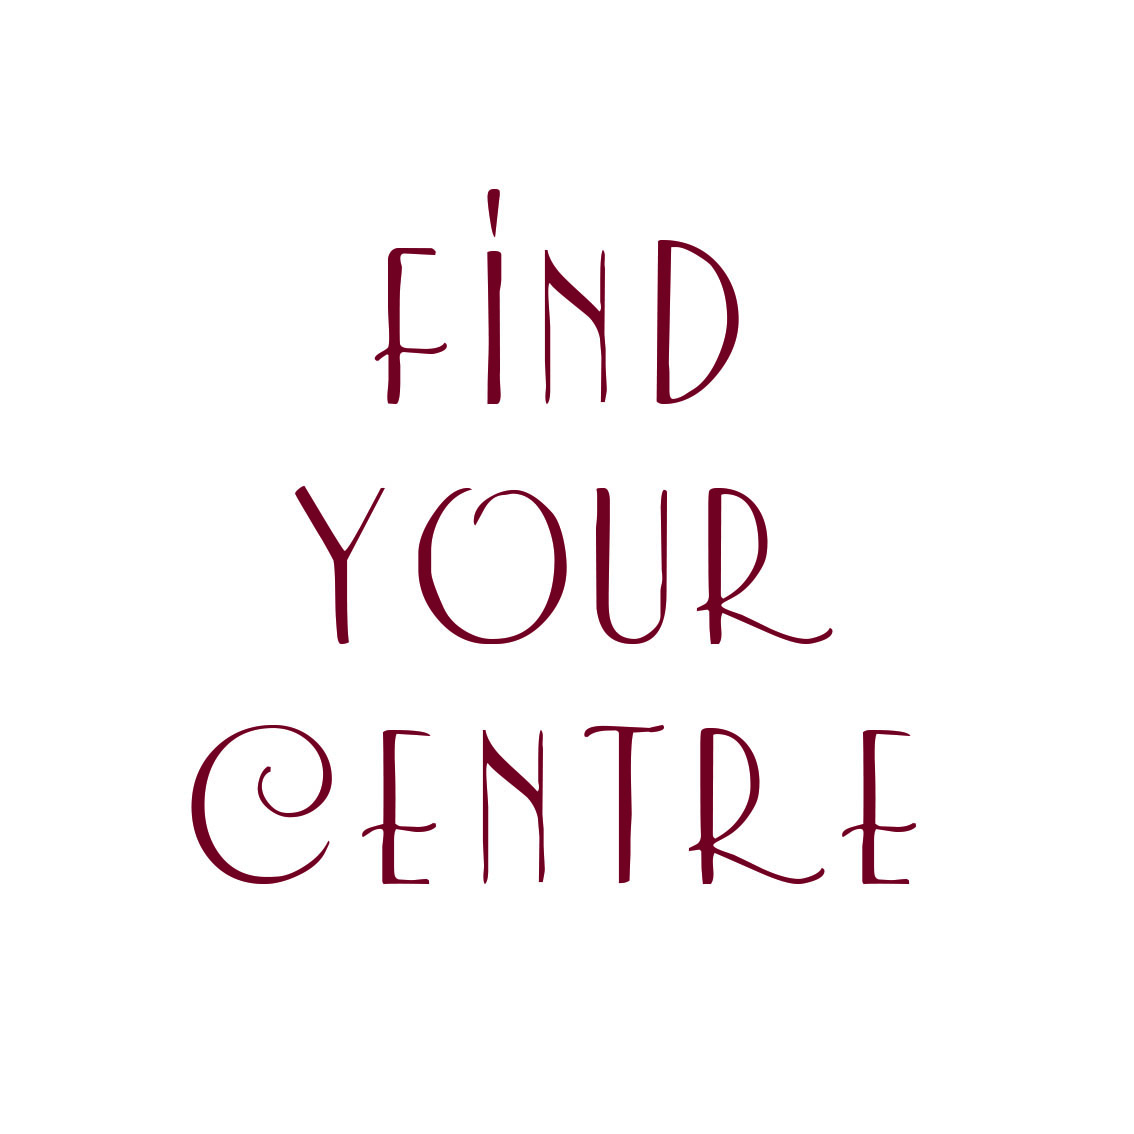 find your centree